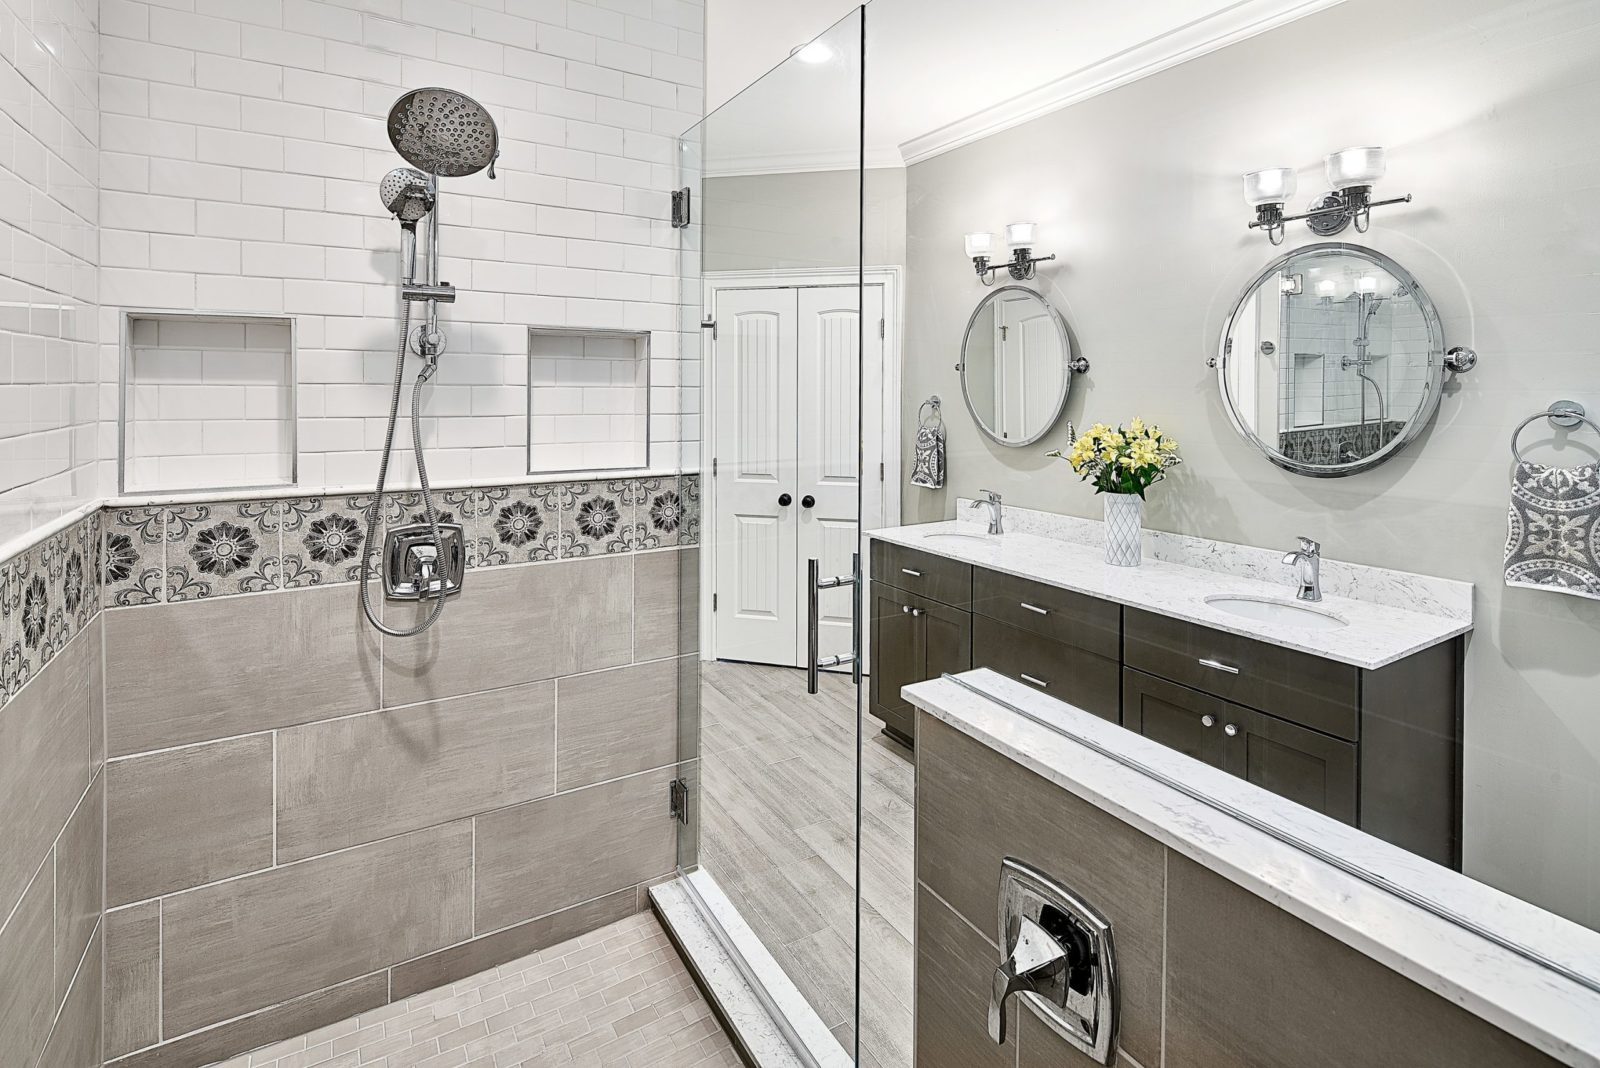 Recessed shower niches with subway tile